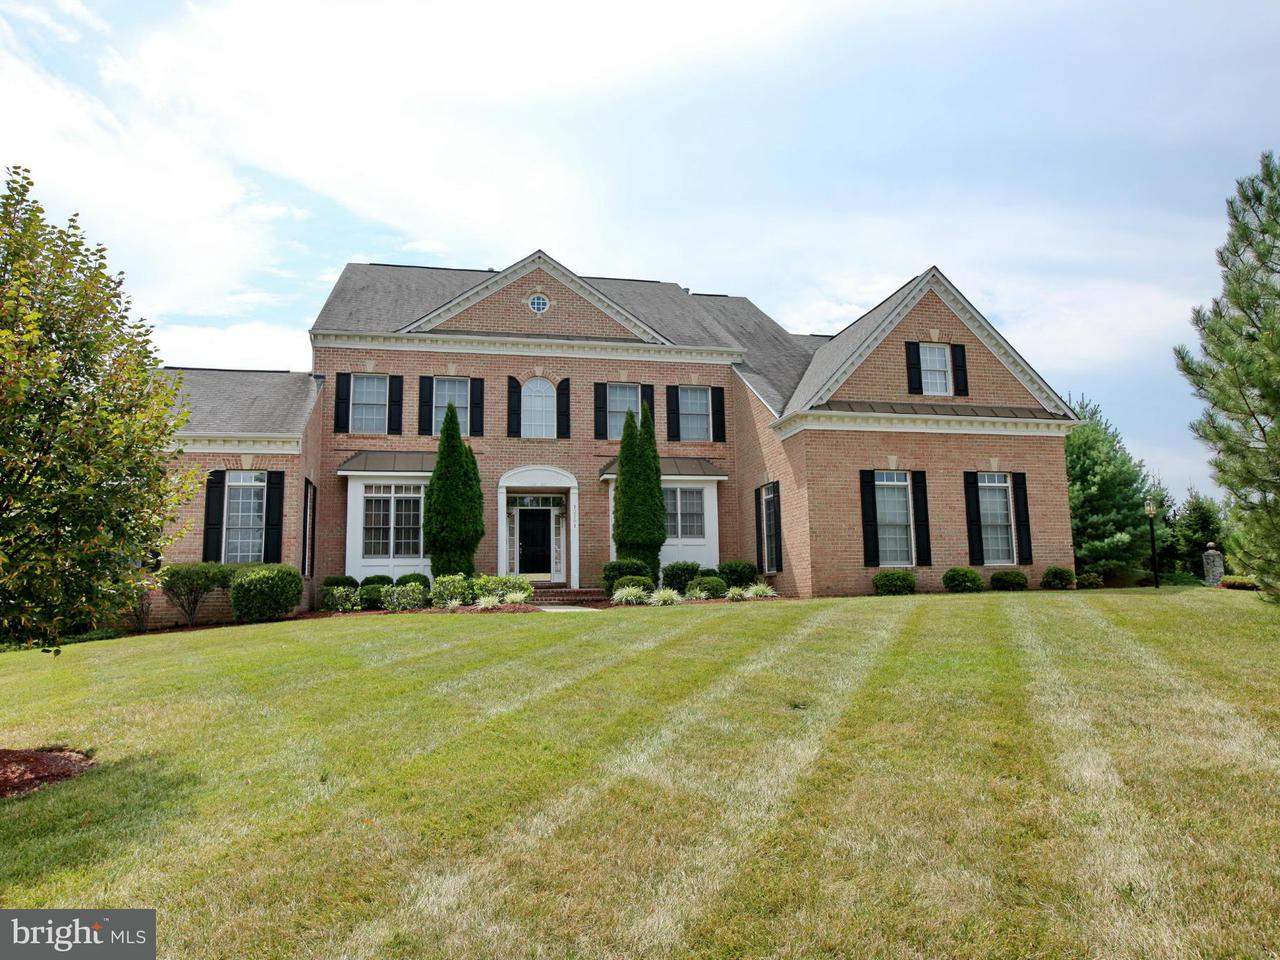 Single Family Home for Sale at 12701 WILLOW MARSH Lane 12701 WILLOW MARSH Lane Bowie, Maryland 20720 United States